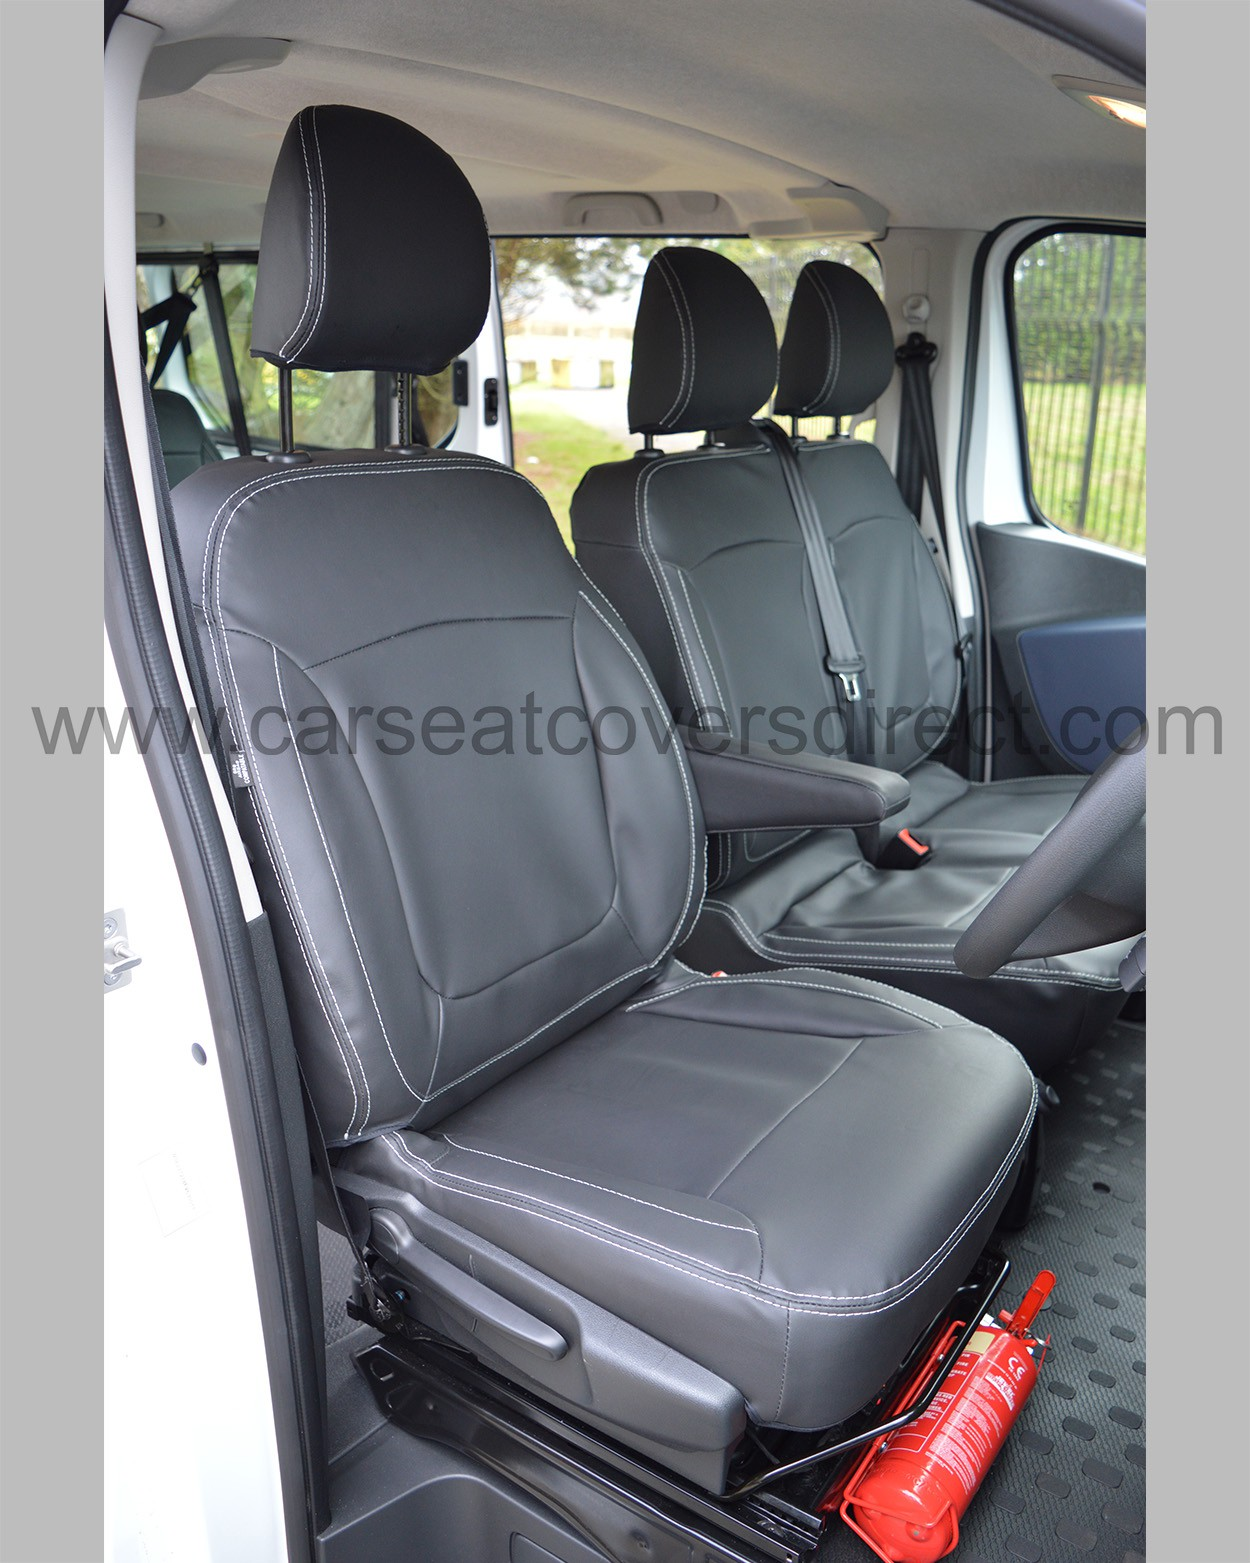 Vauxhall Vivaro Tailored Seat Covers - Drivers seat